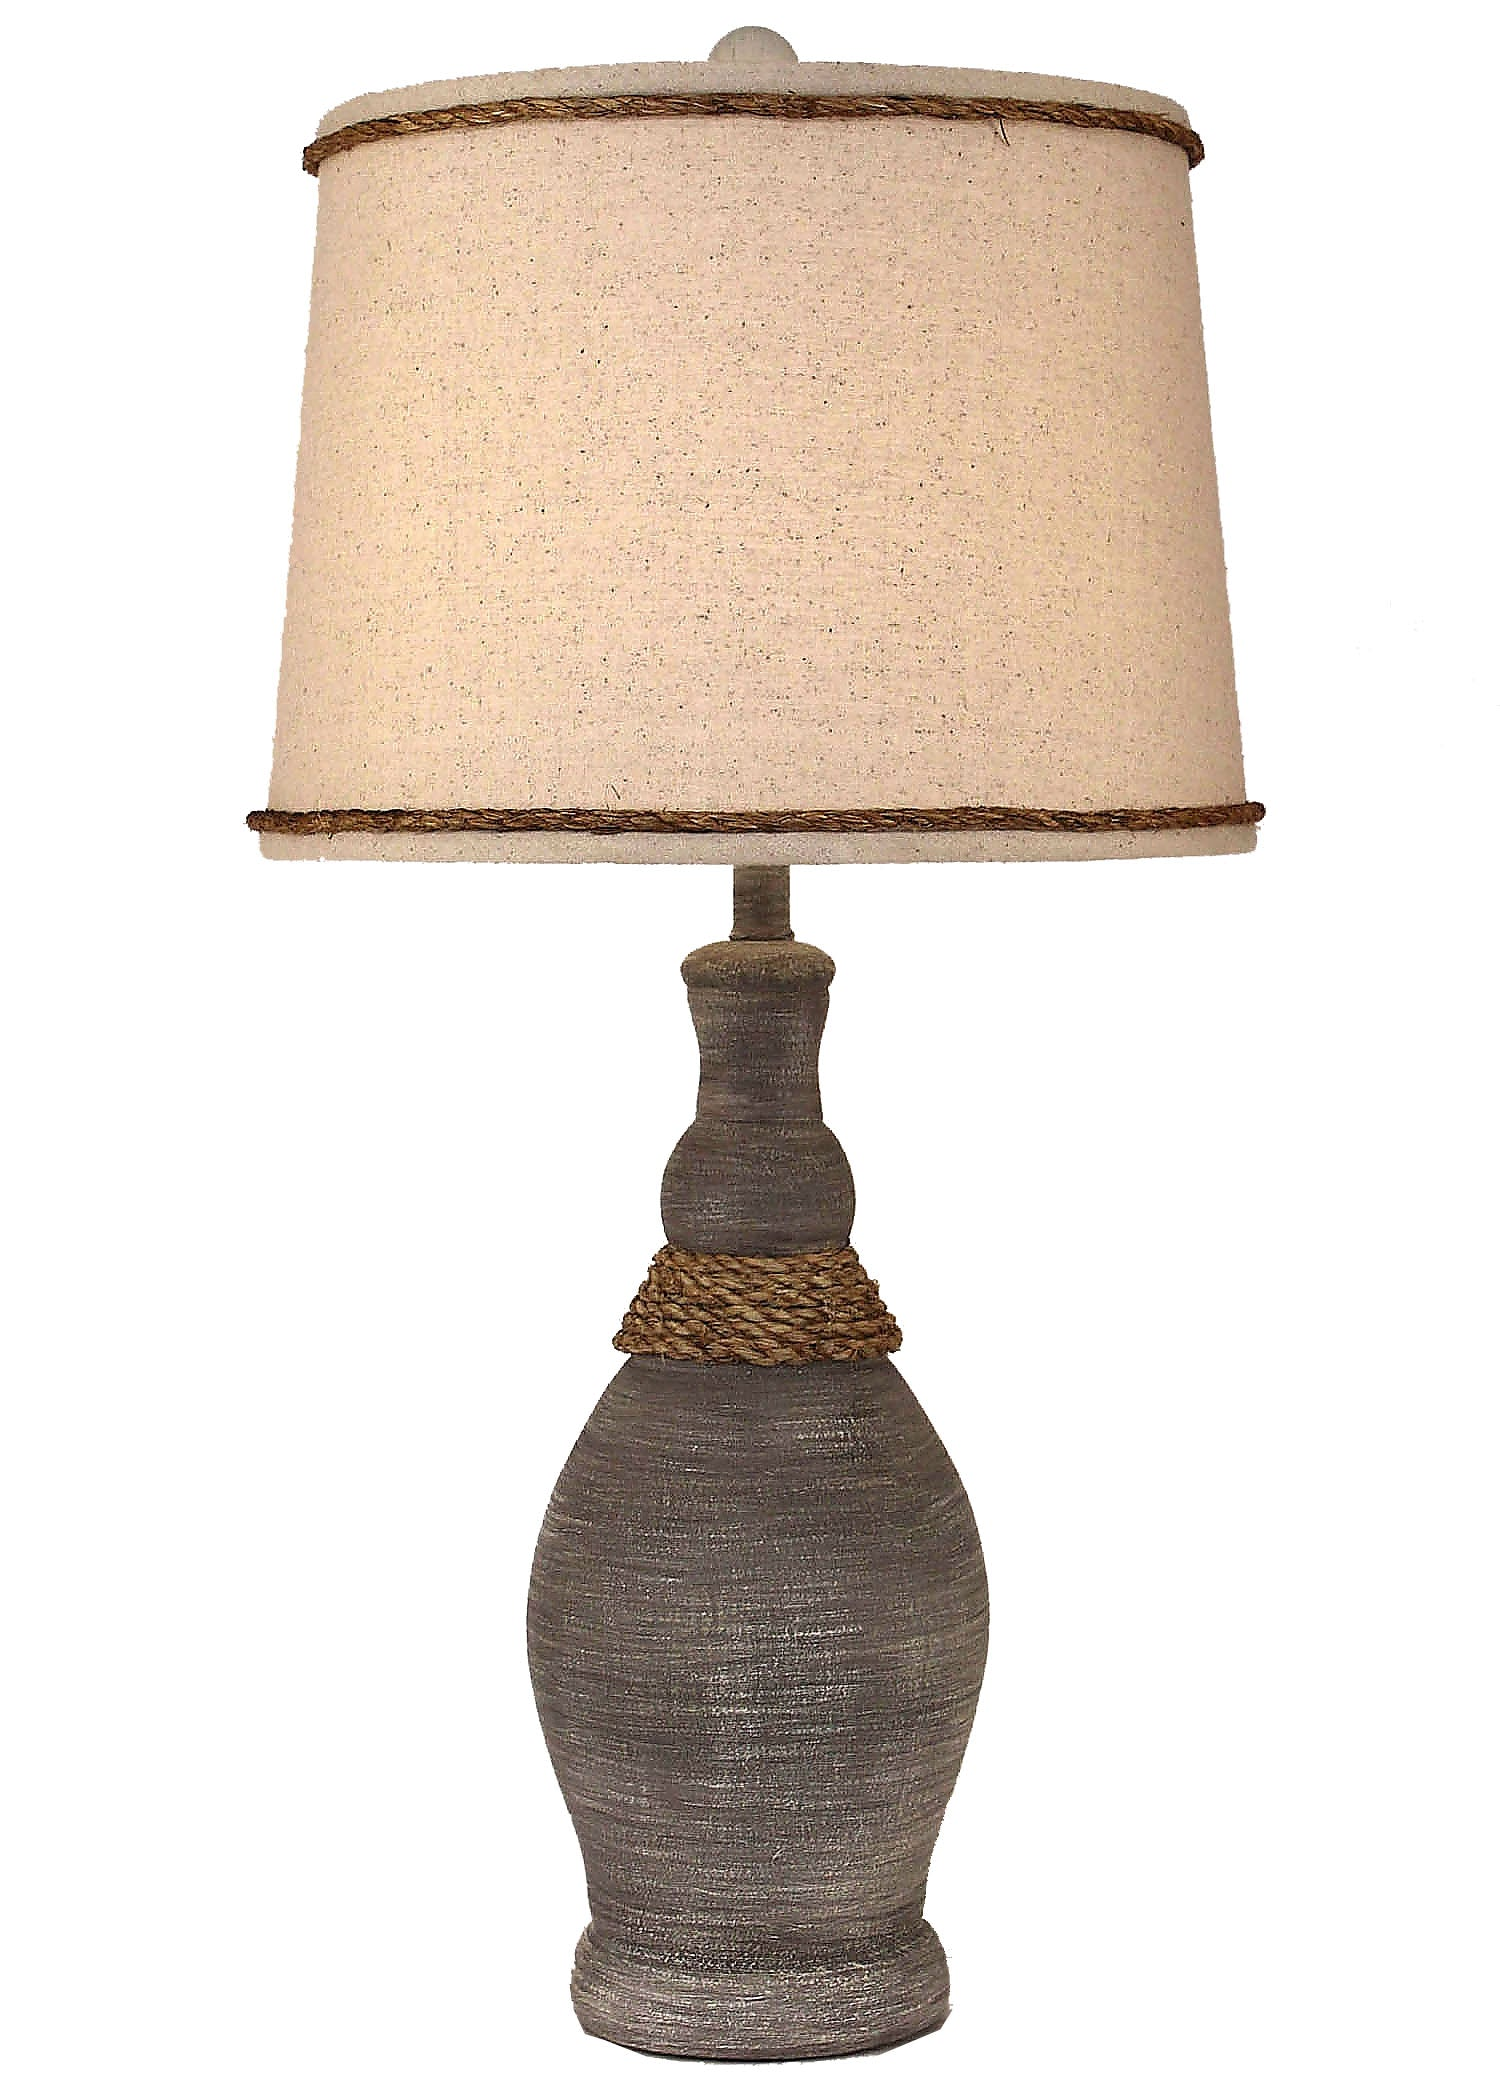 Driftwood Slender Neck Casual Table Lamp w/ Rope Accent - Coast Lamp Shop